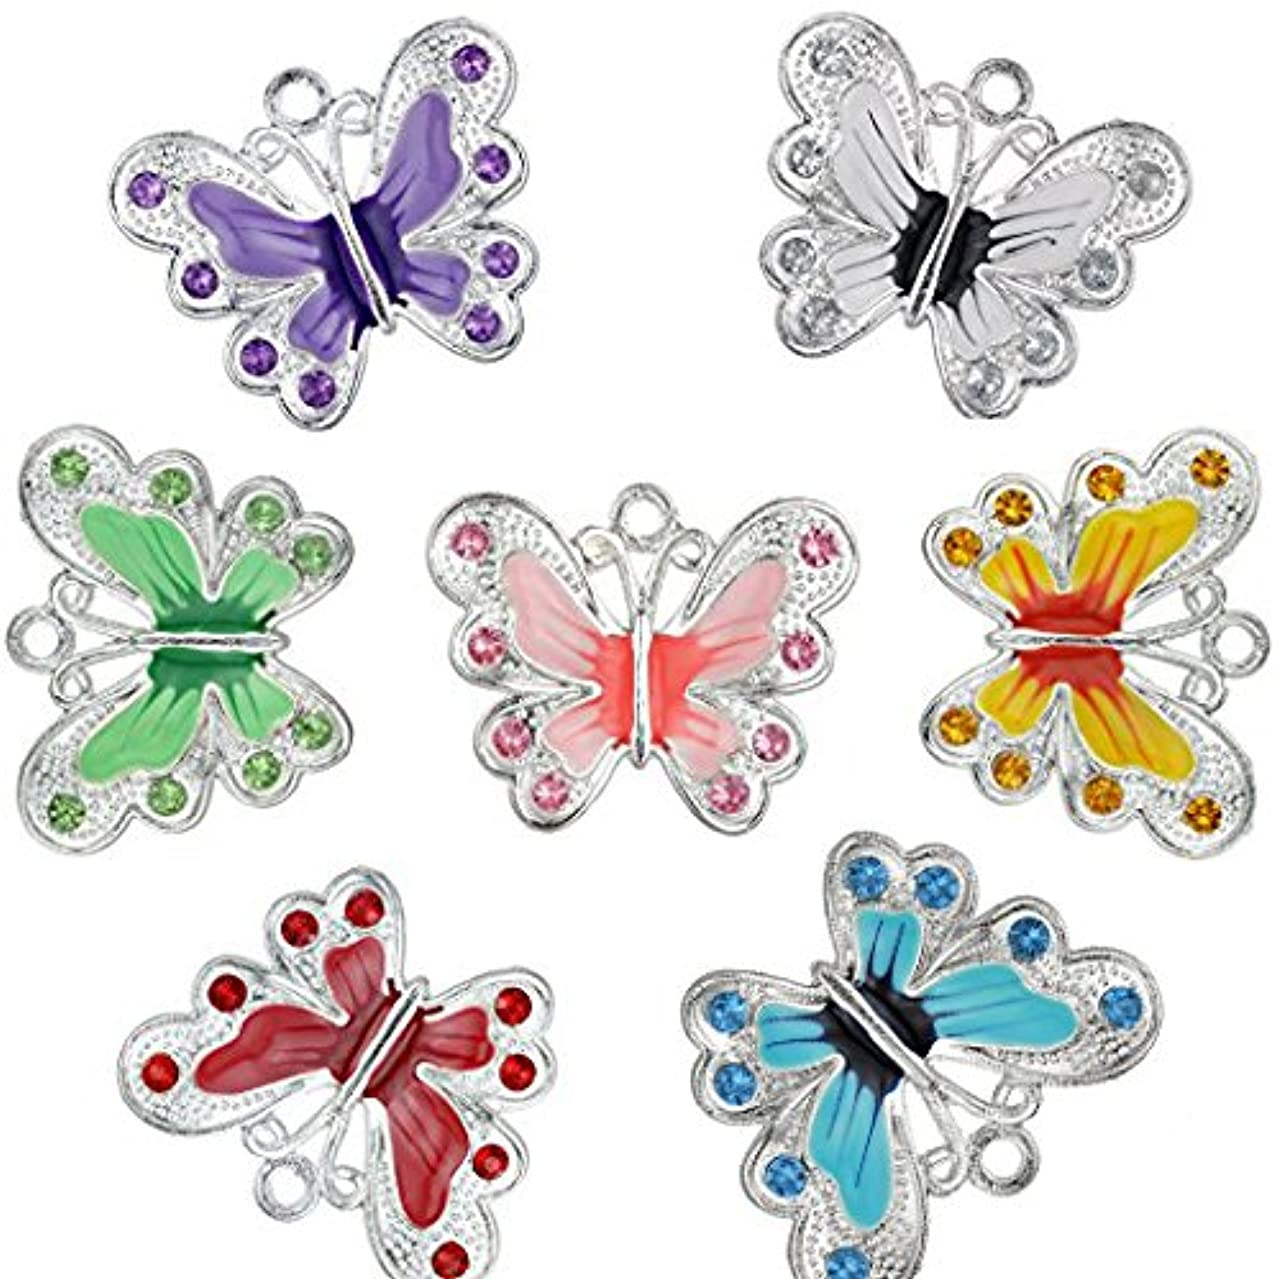 RUBYCA Silver Plated Big Butterfly Enamel Charm Beads Pendants for Jewelry Making DIY 56pcs Mixed